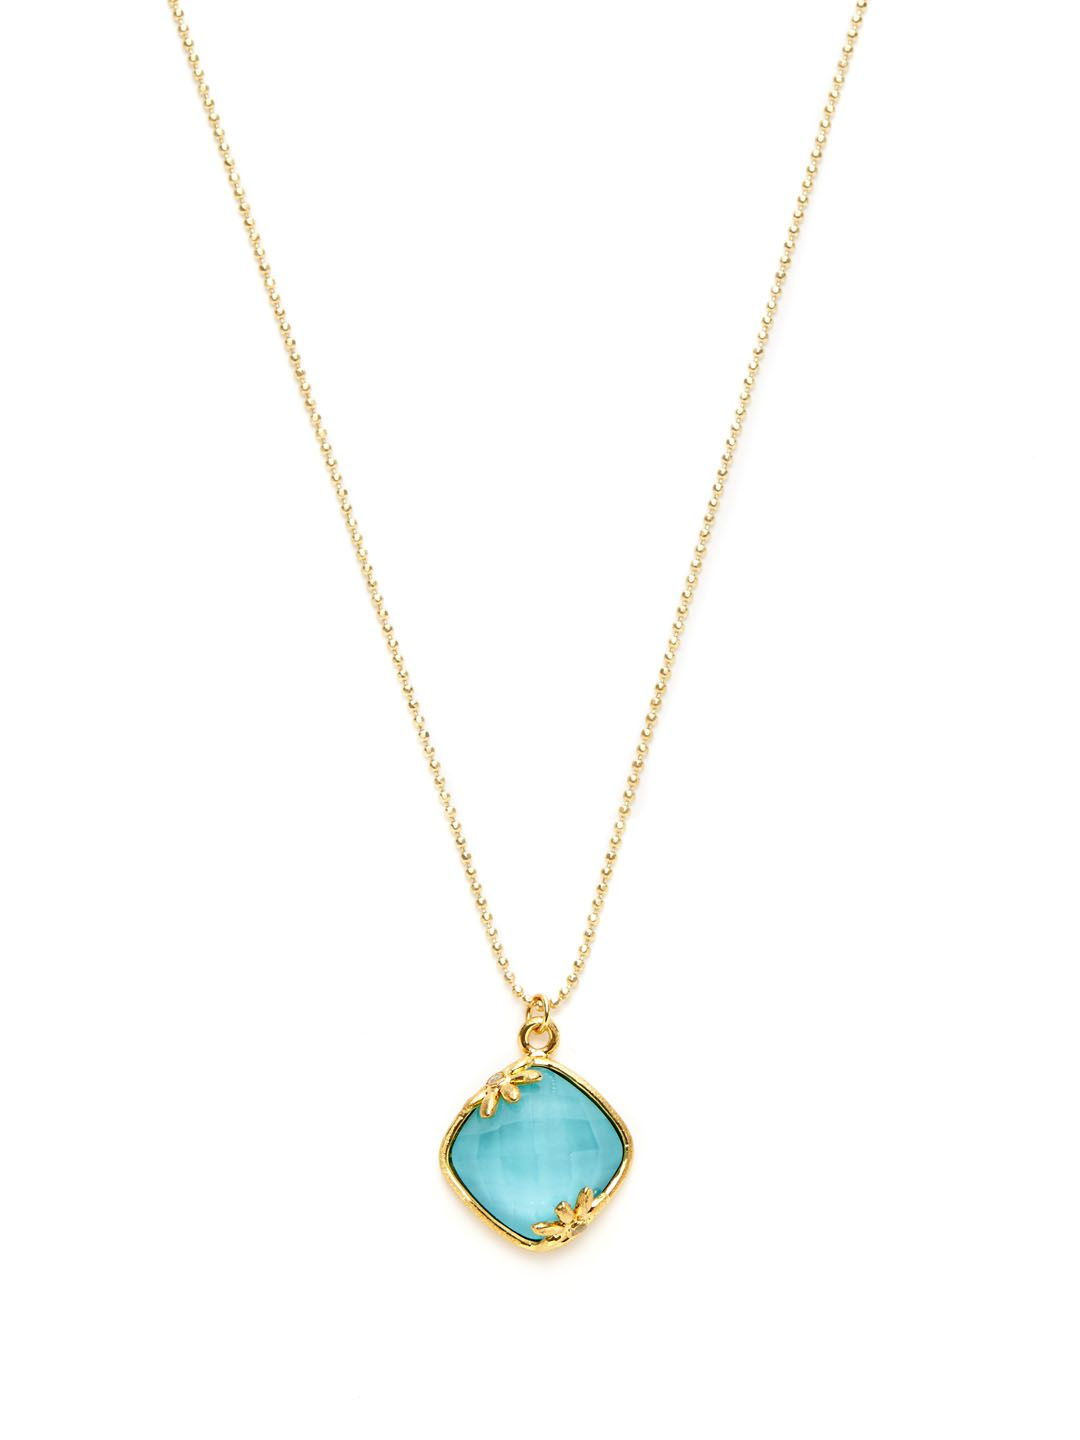 Rock Crystal & Turquoise Pendant Necklace by Indulgems at Gilt